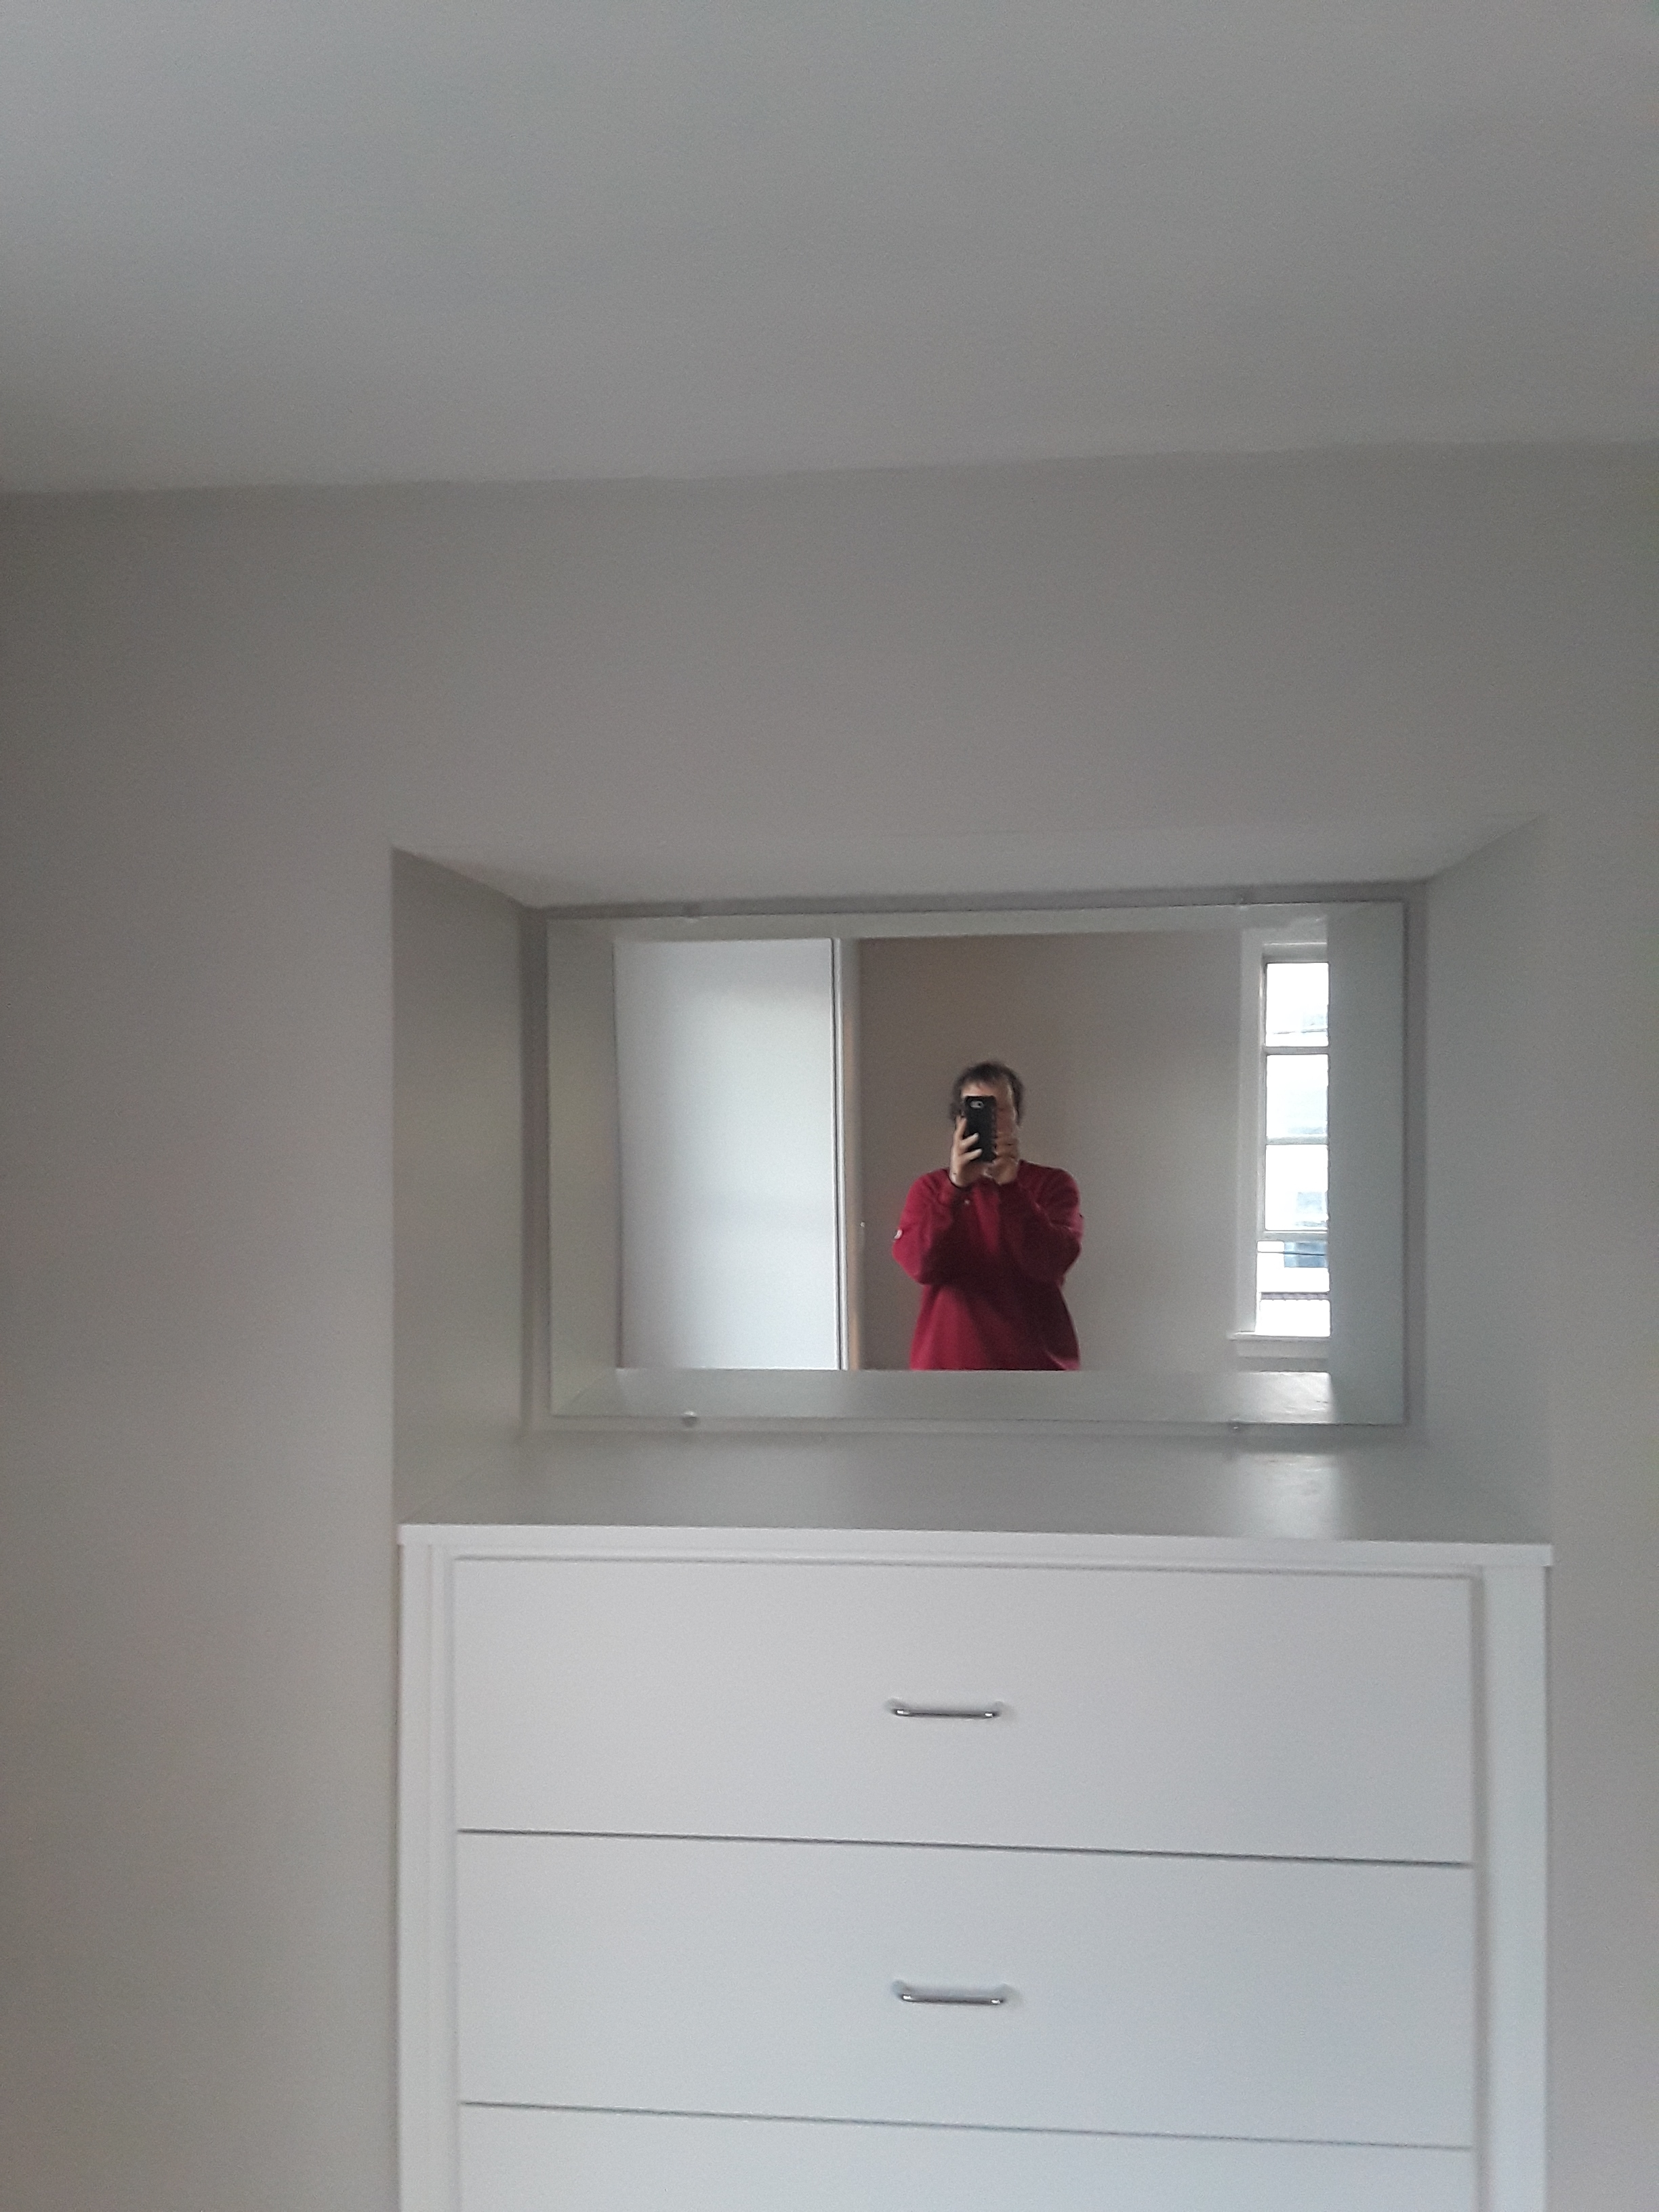 Norwood - Mirror in alcove above built in bureau - 2019